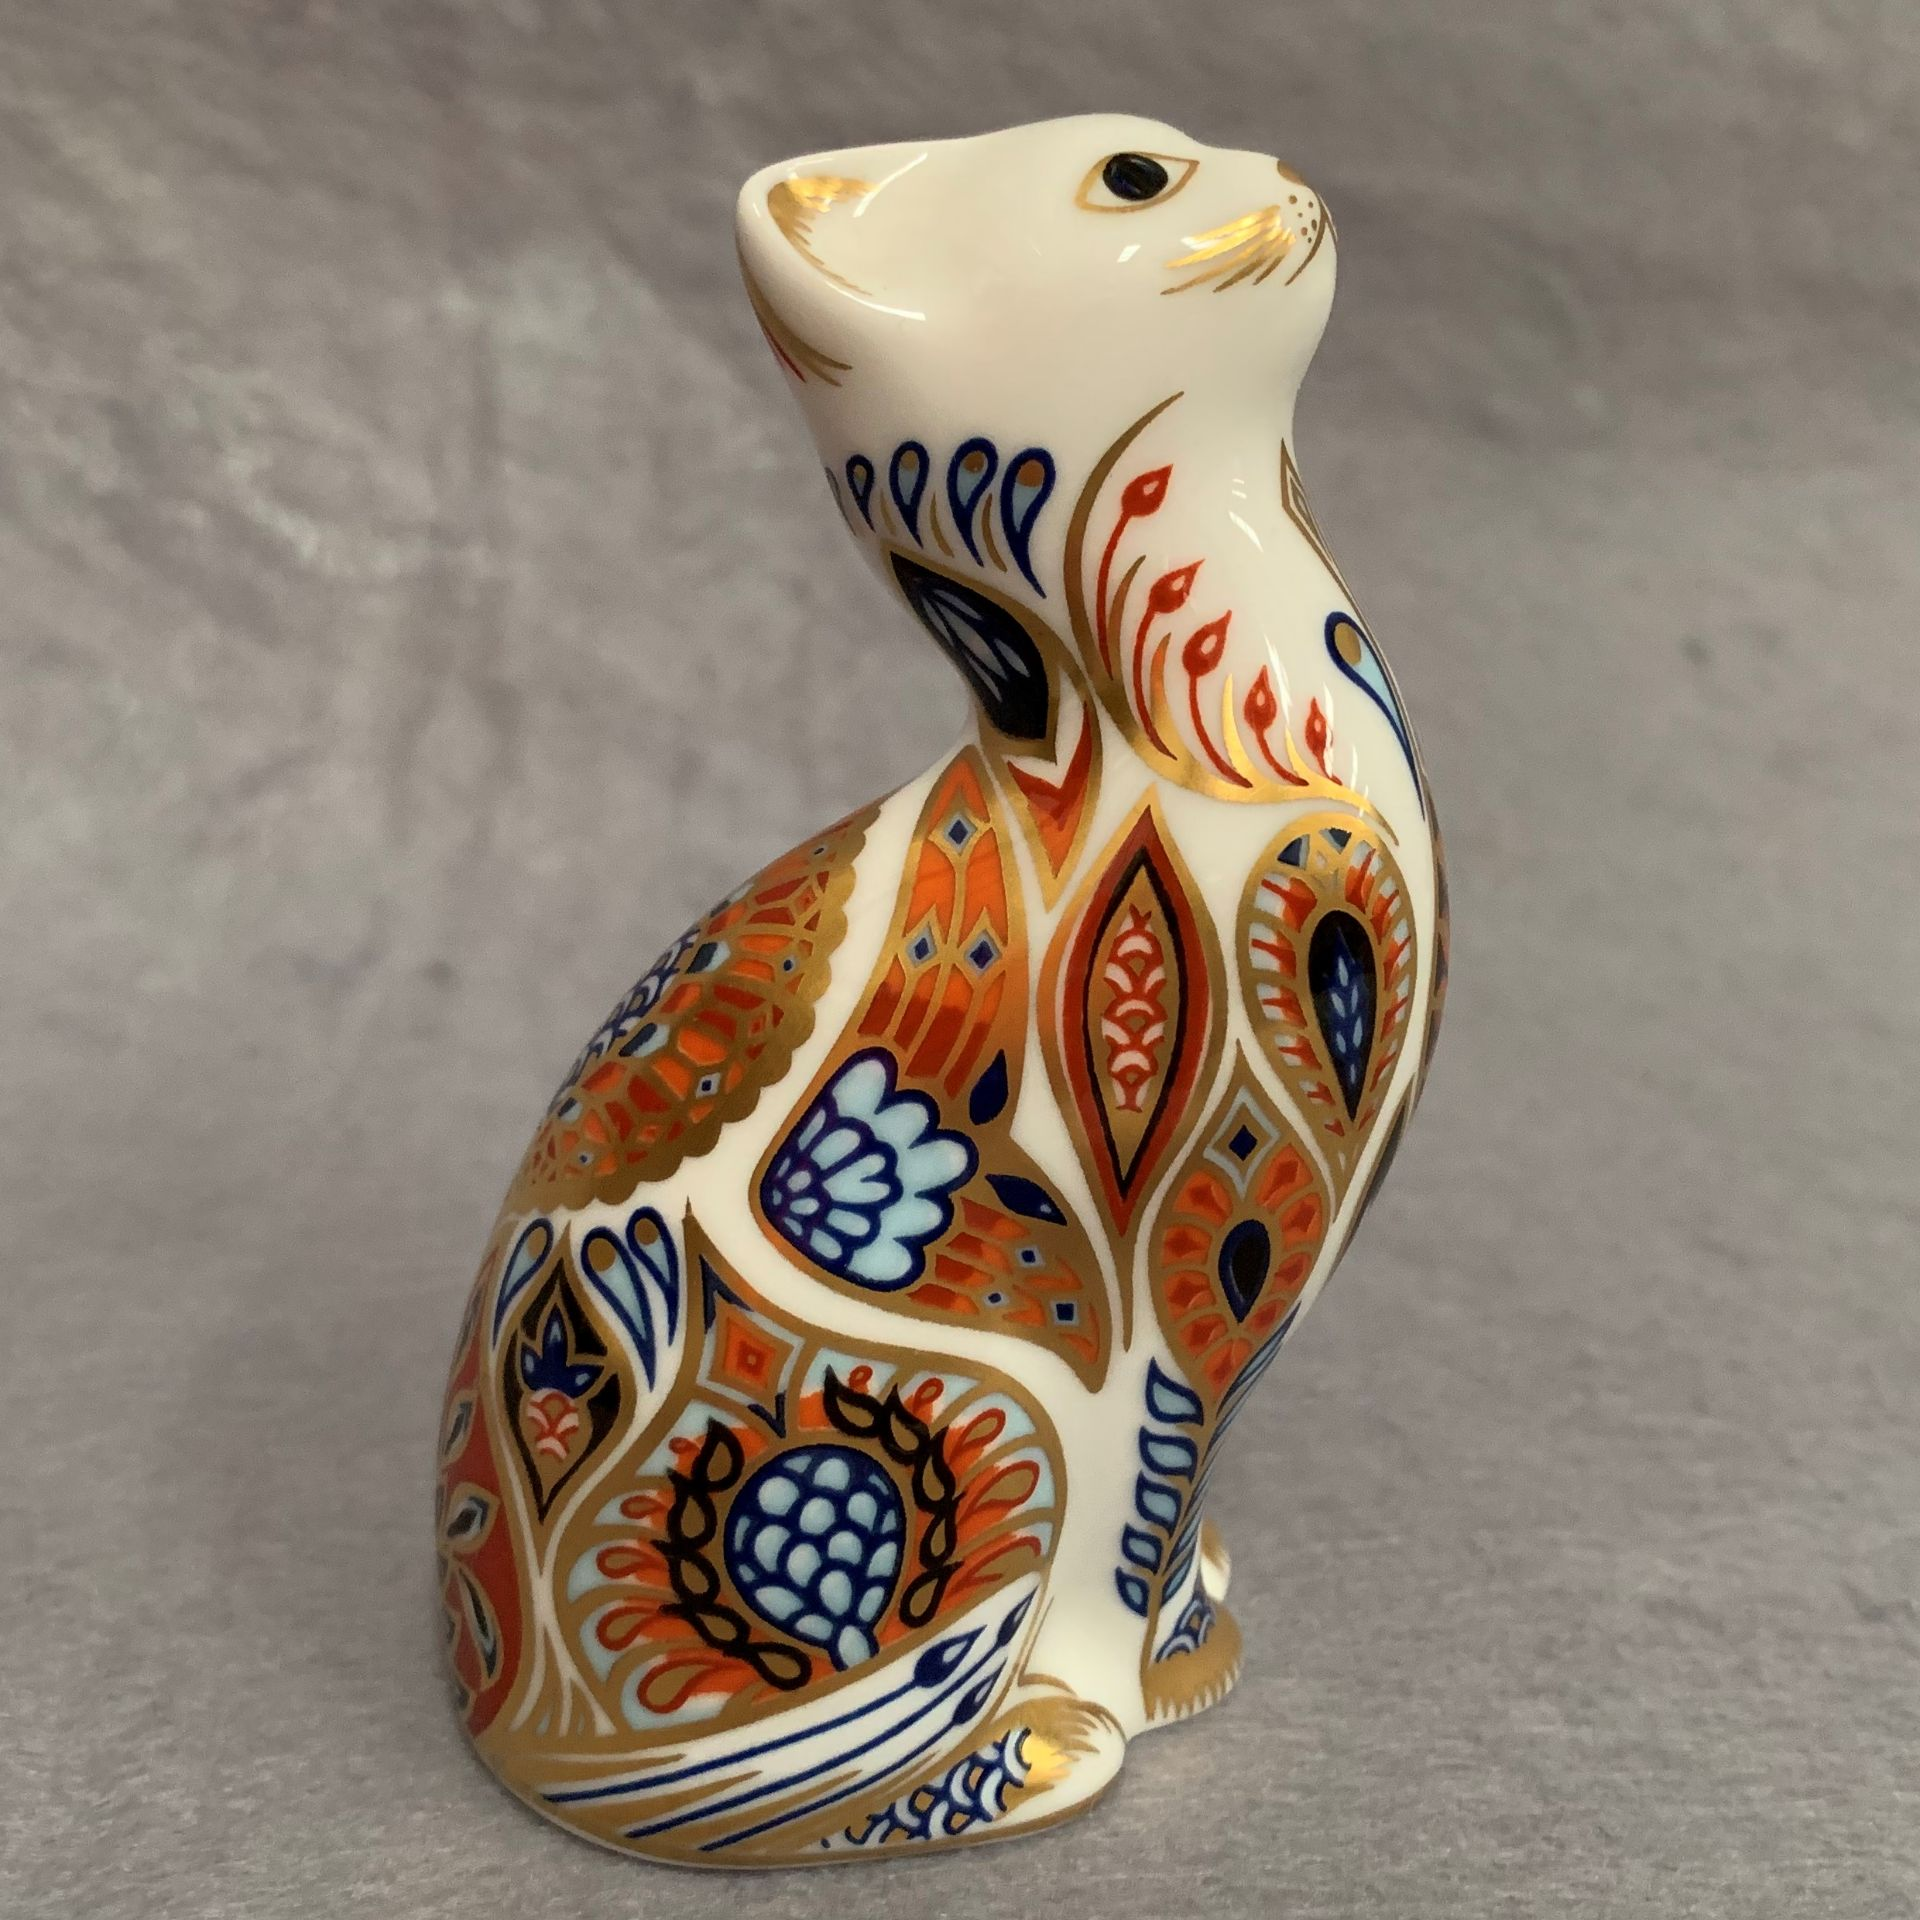 Lot 27 - Royal Crown Derby paperweight modelled as a cat, LIX,